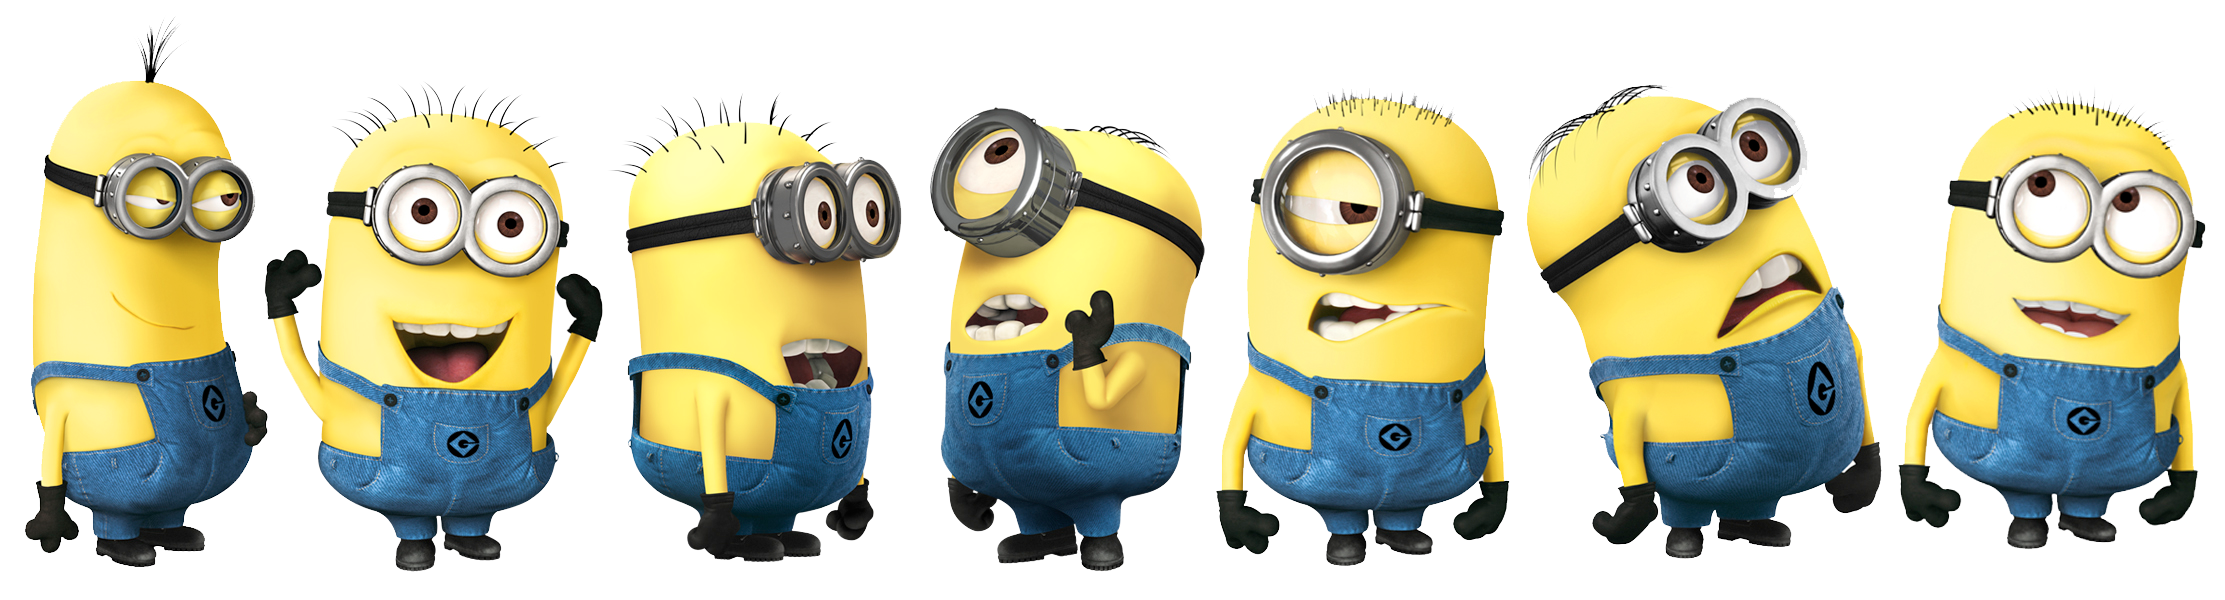 Despicable Me clipart transparent background Of 1404KB the png minion